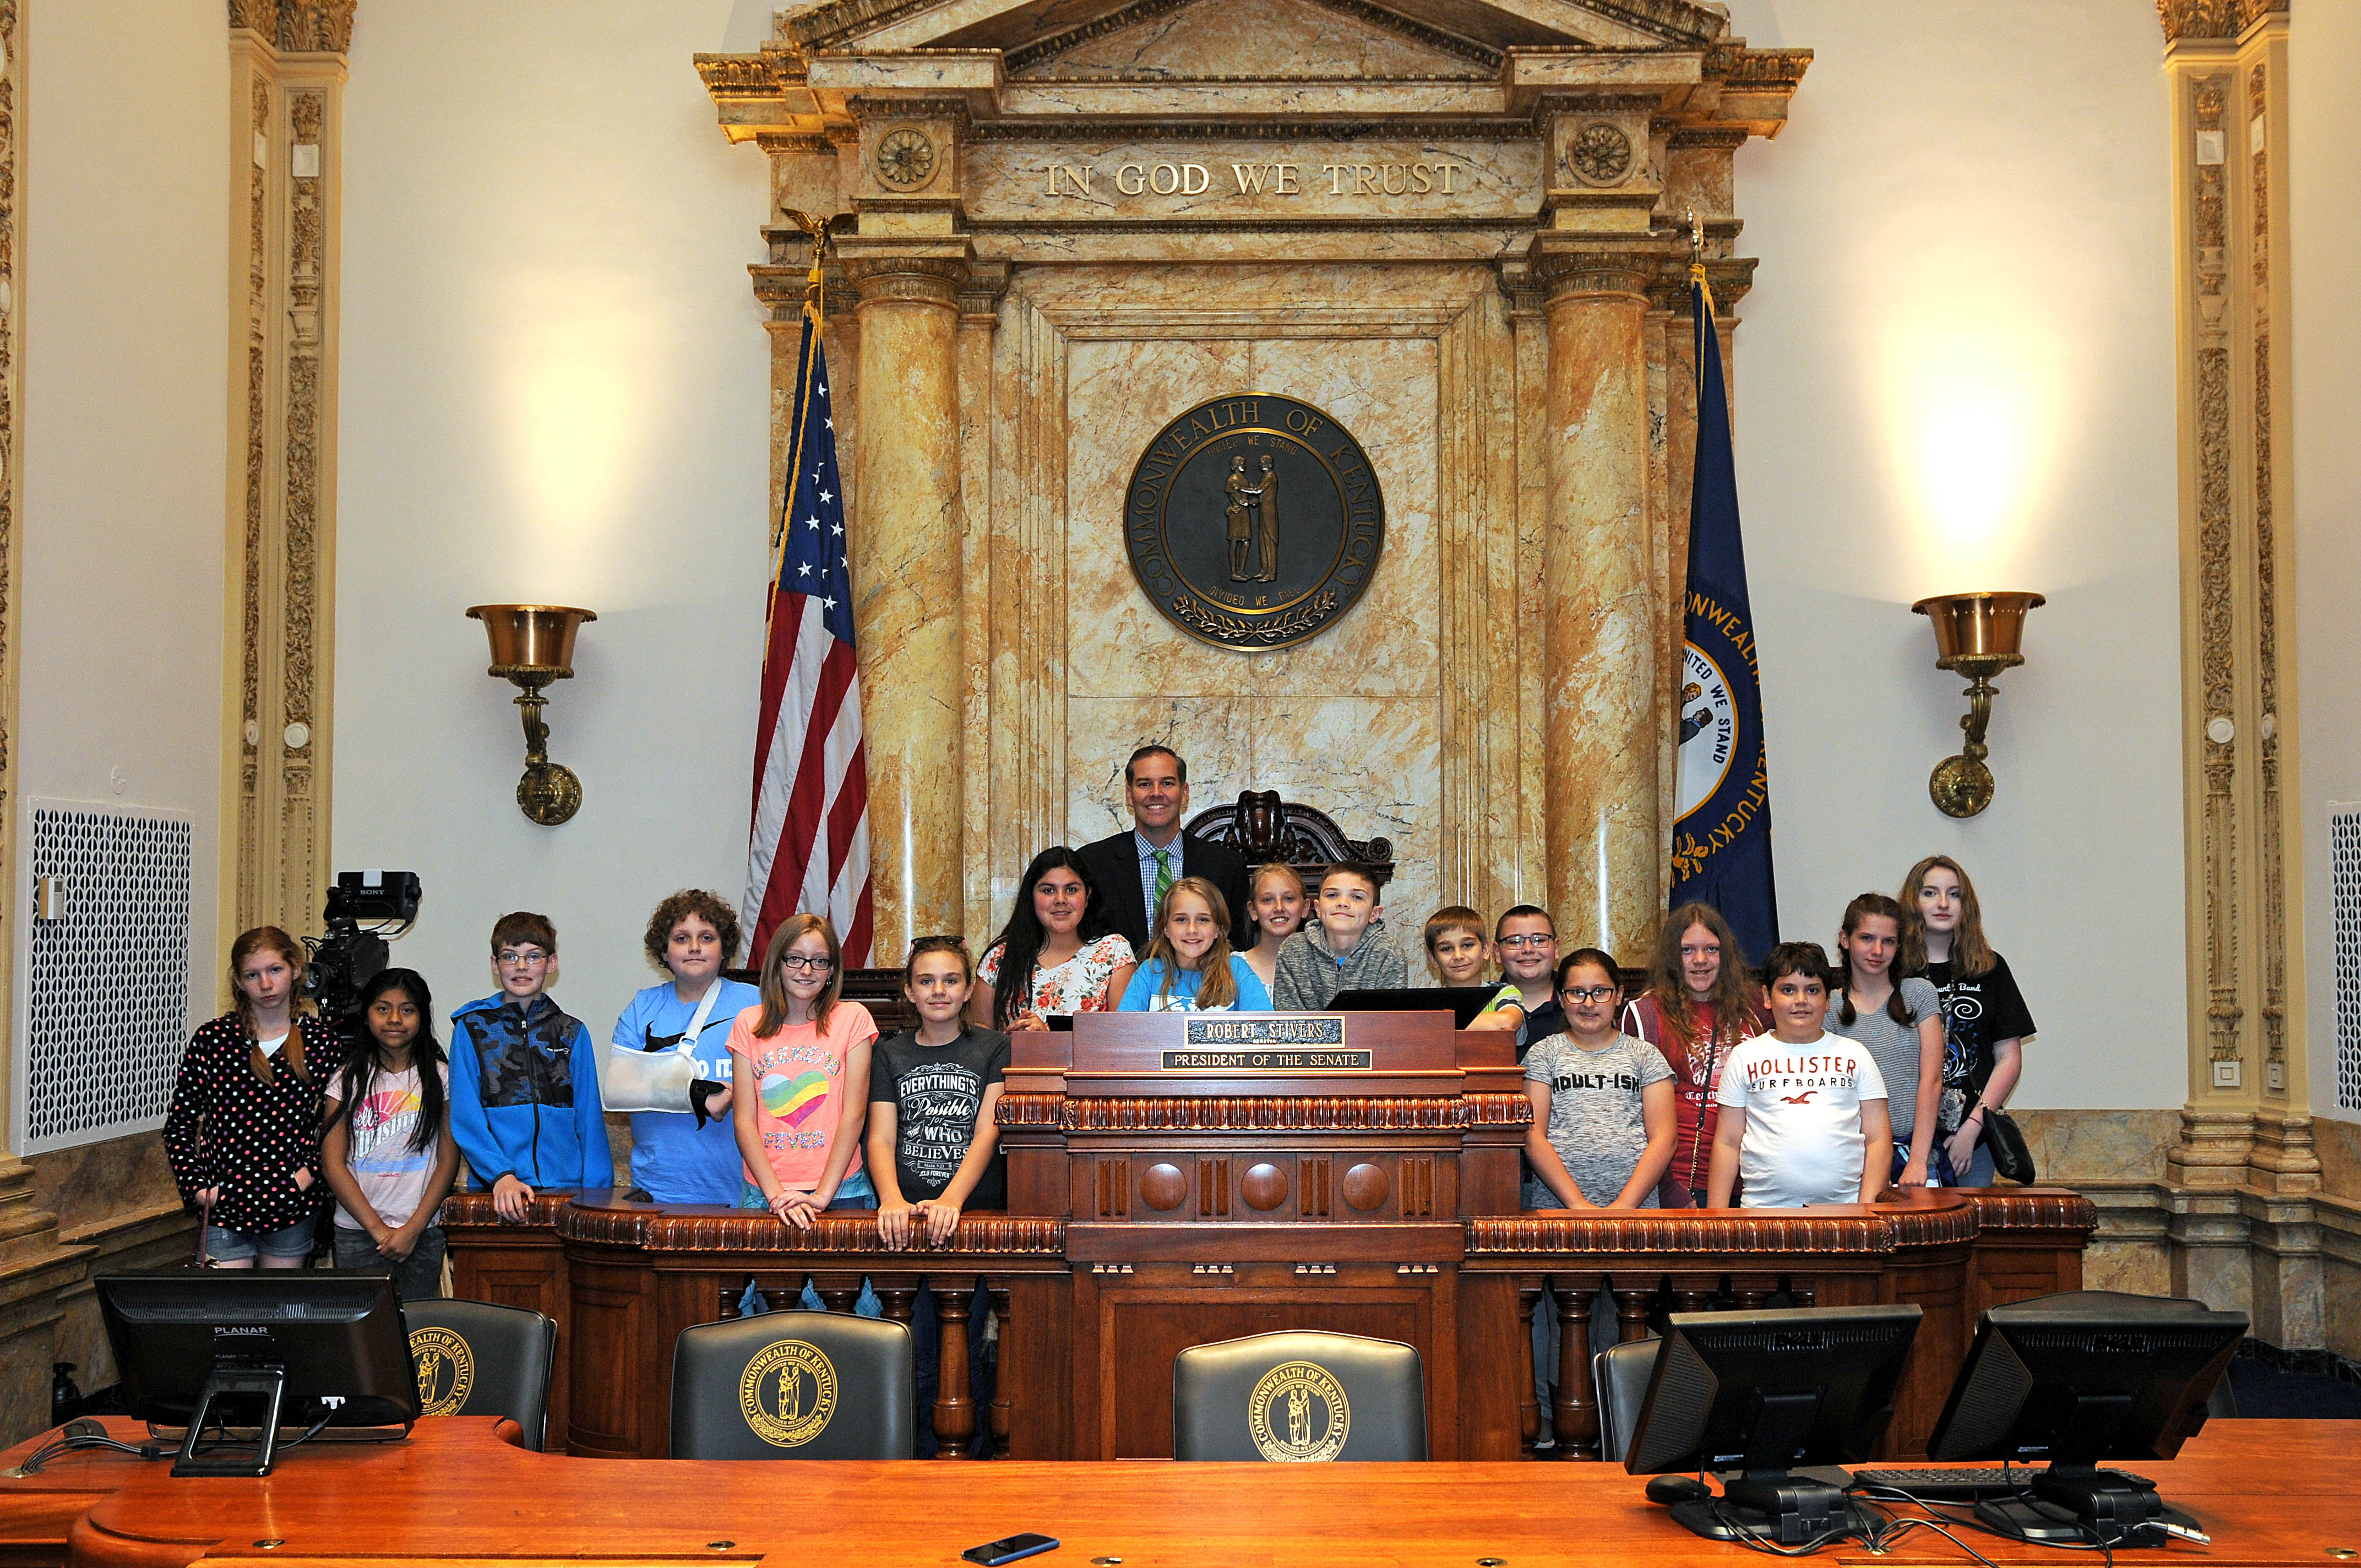 On Monday, May 13th, 5th grade social studies teacher Chris Marcum accompanied a group of students to Frankfort, Kentucky to tour the State Capitol and to meet with State Senator Max Wise.